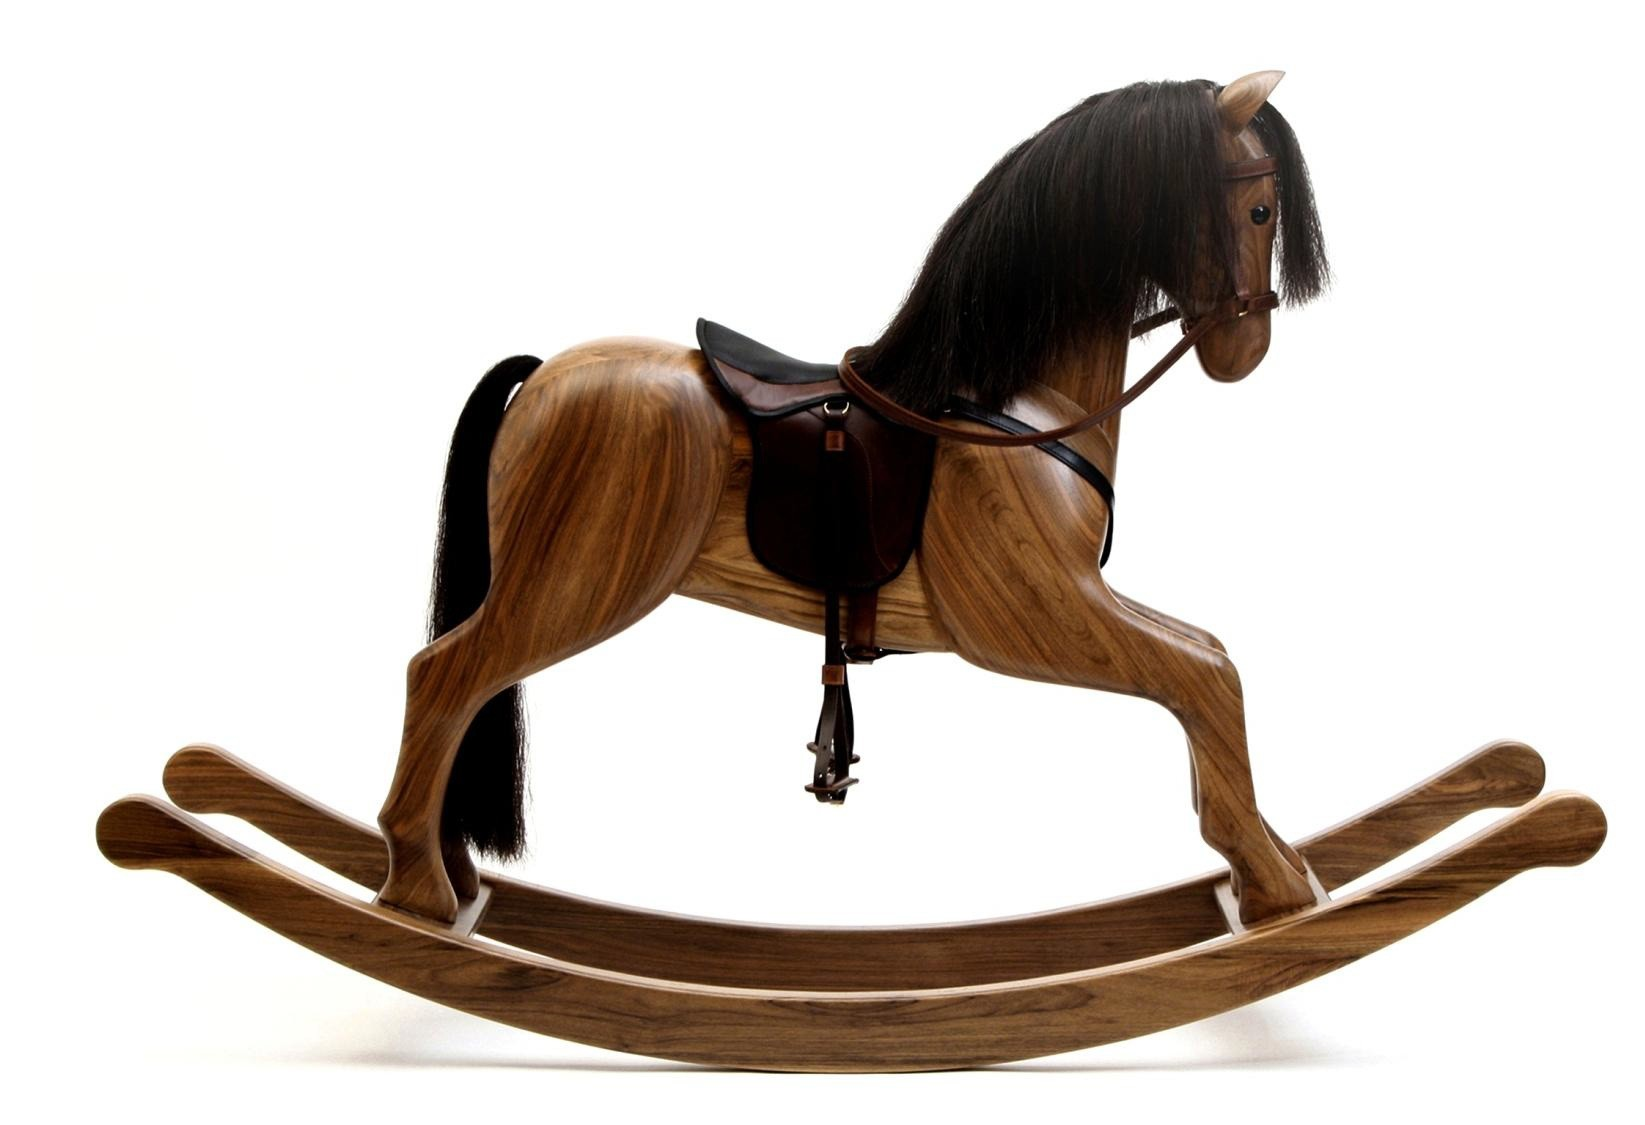 short story the rocking horse winner This web site is dedicated to the wonderful world of the short story and to all who enjoy reading shorts stories as i do i will try to add a few short stories every month the rocking-horse winner.